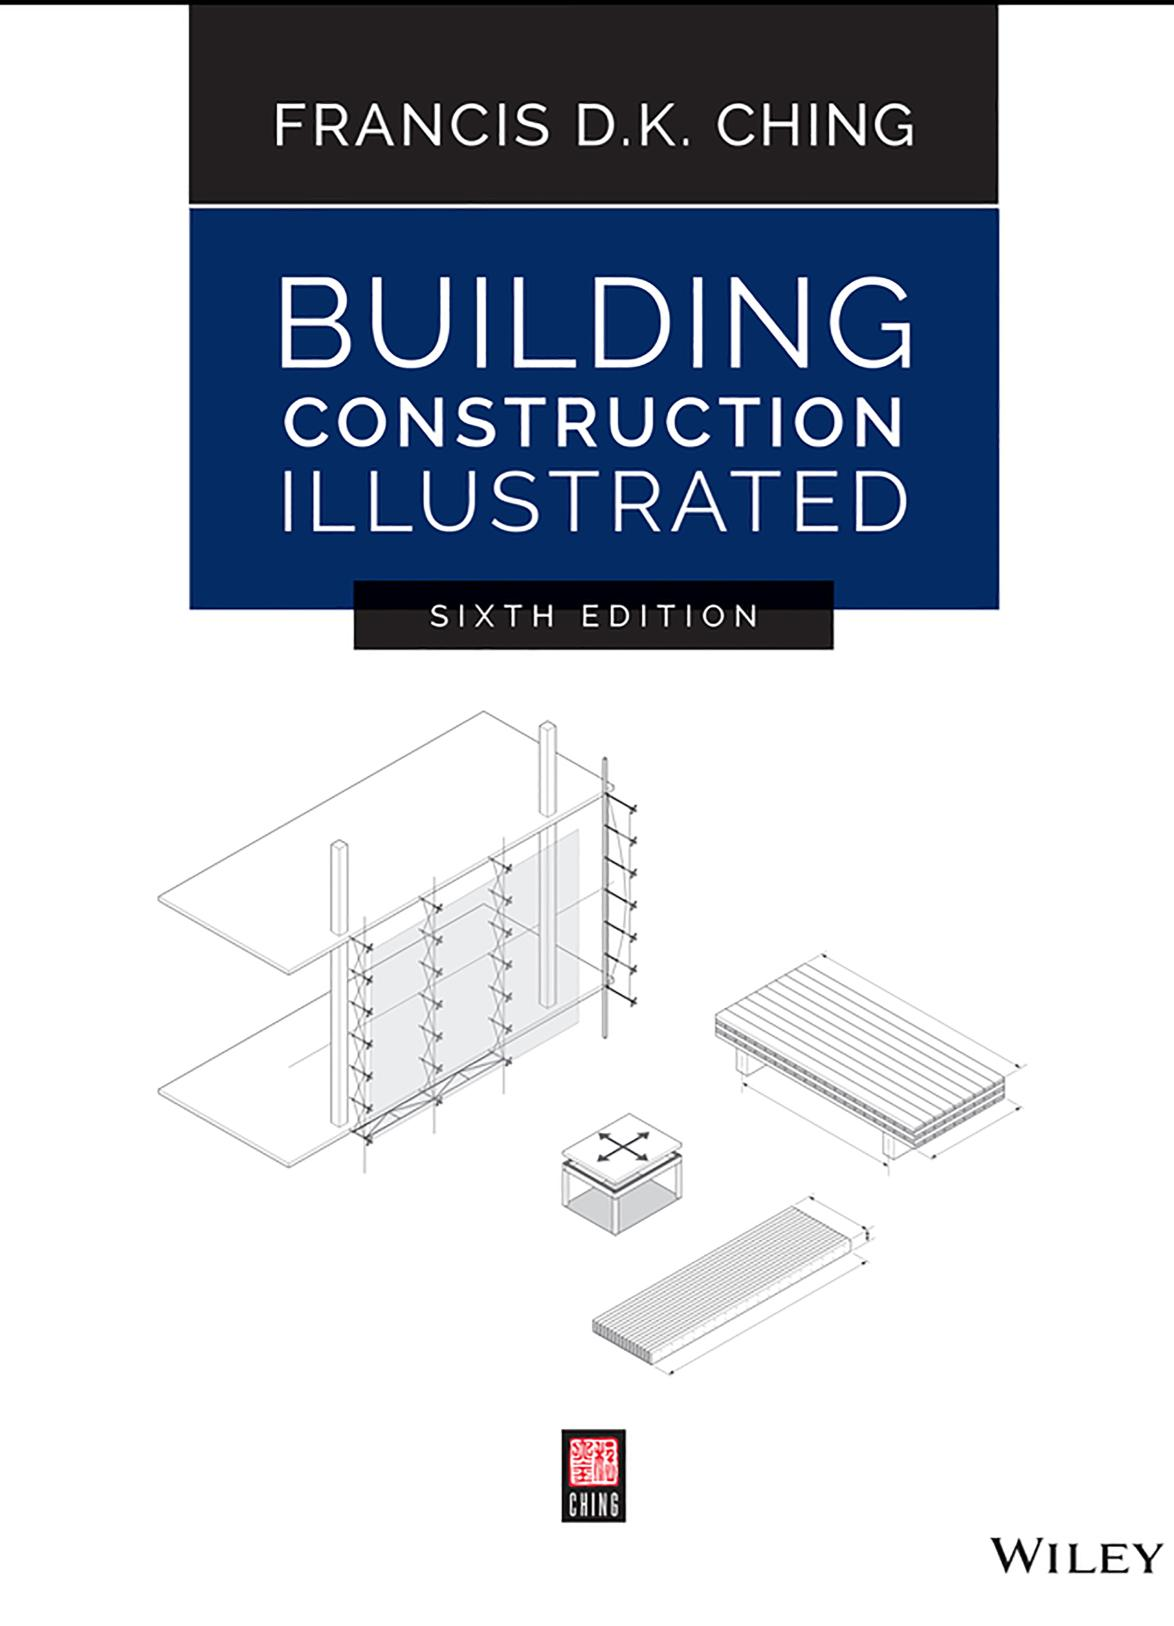 Building Construction Illustrated 6th Edition Pdf